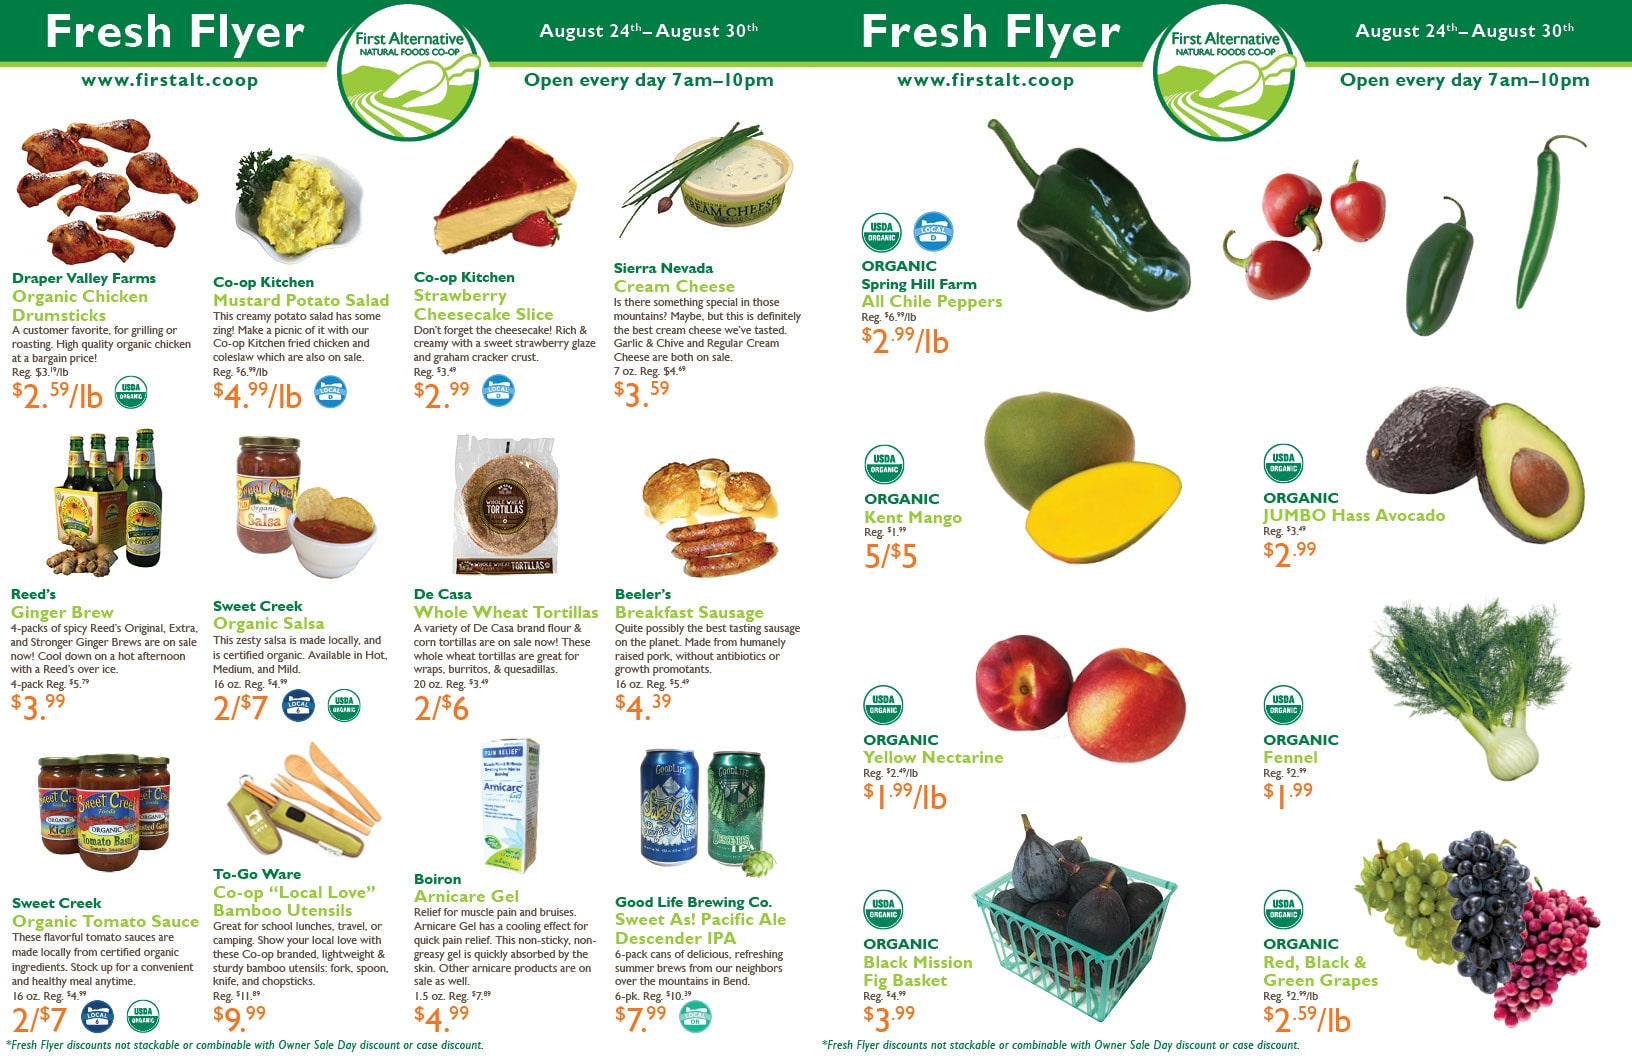 First Alternative Co-op Fresh Flyer August 24-30